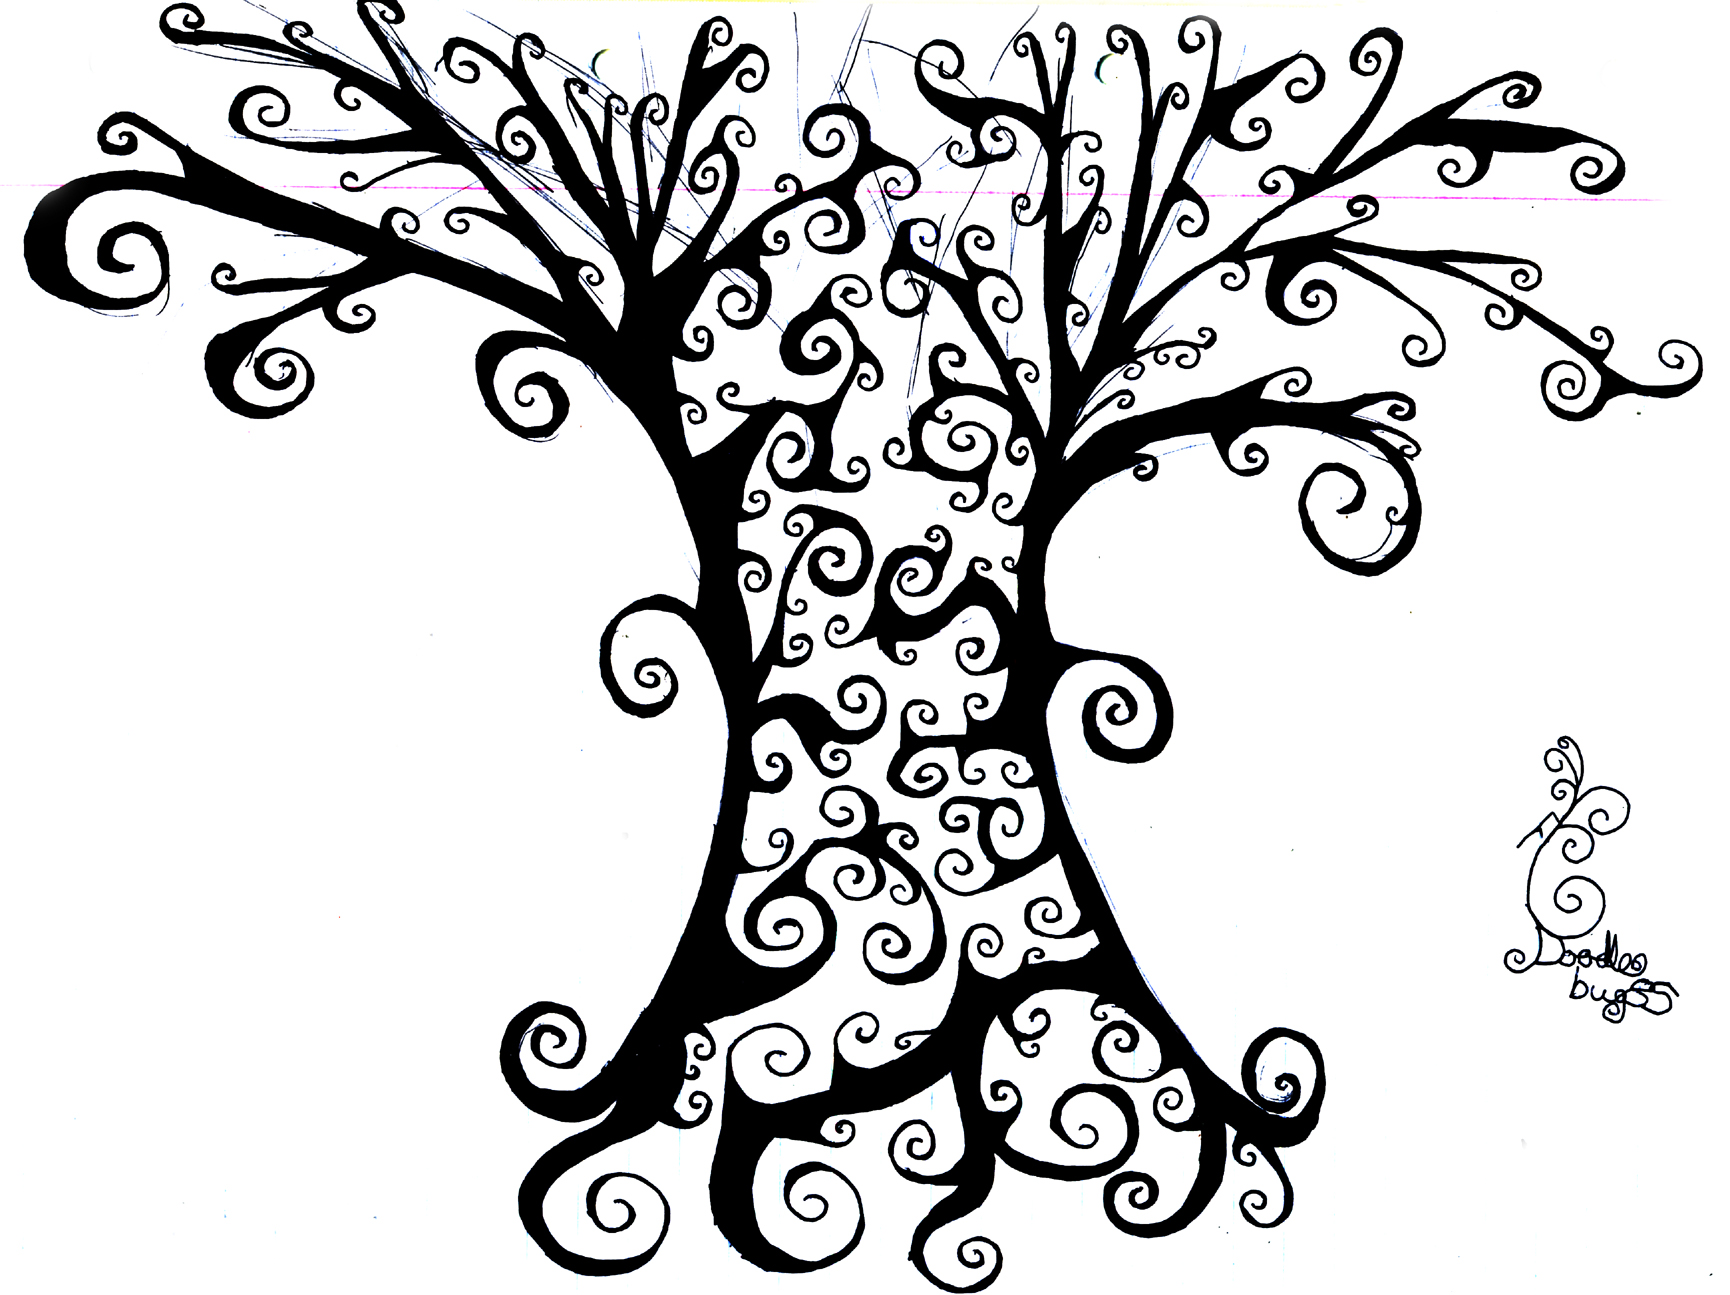 40 Tree Artwork Pictures Free Cliparts That You Can Download To